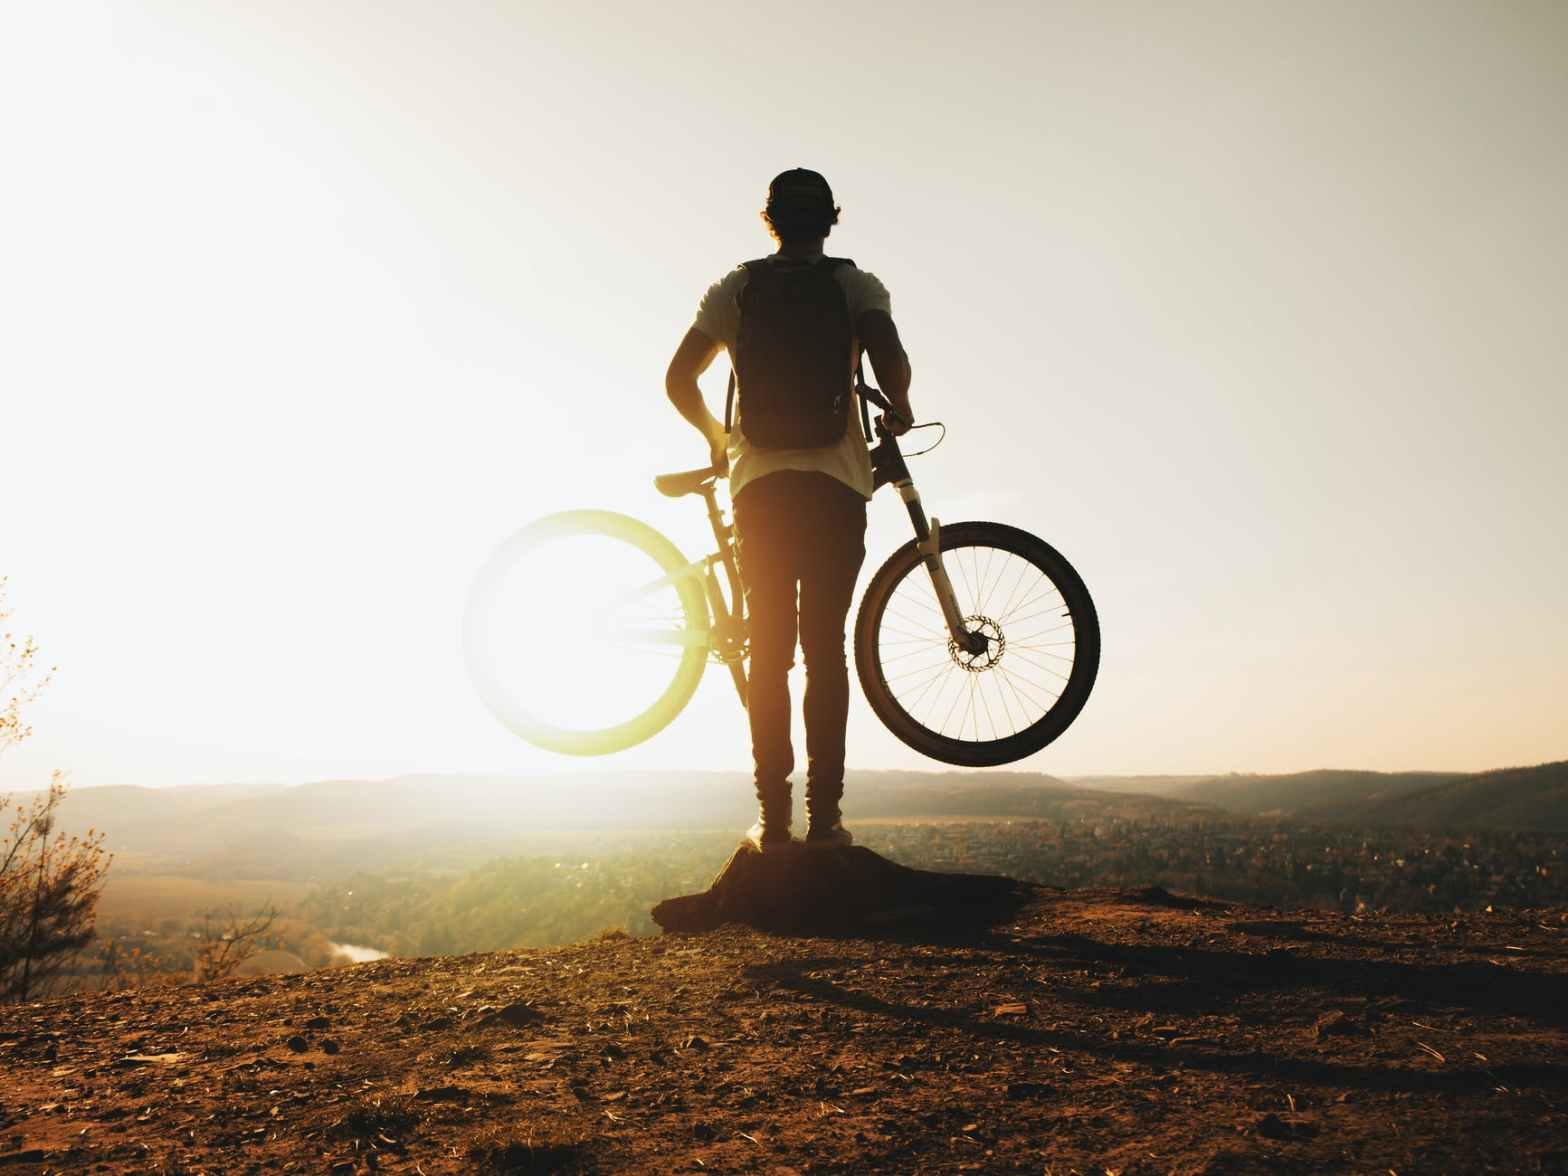 Mountain bike cyclist. Photo by Daniel Frank on Pexels.com